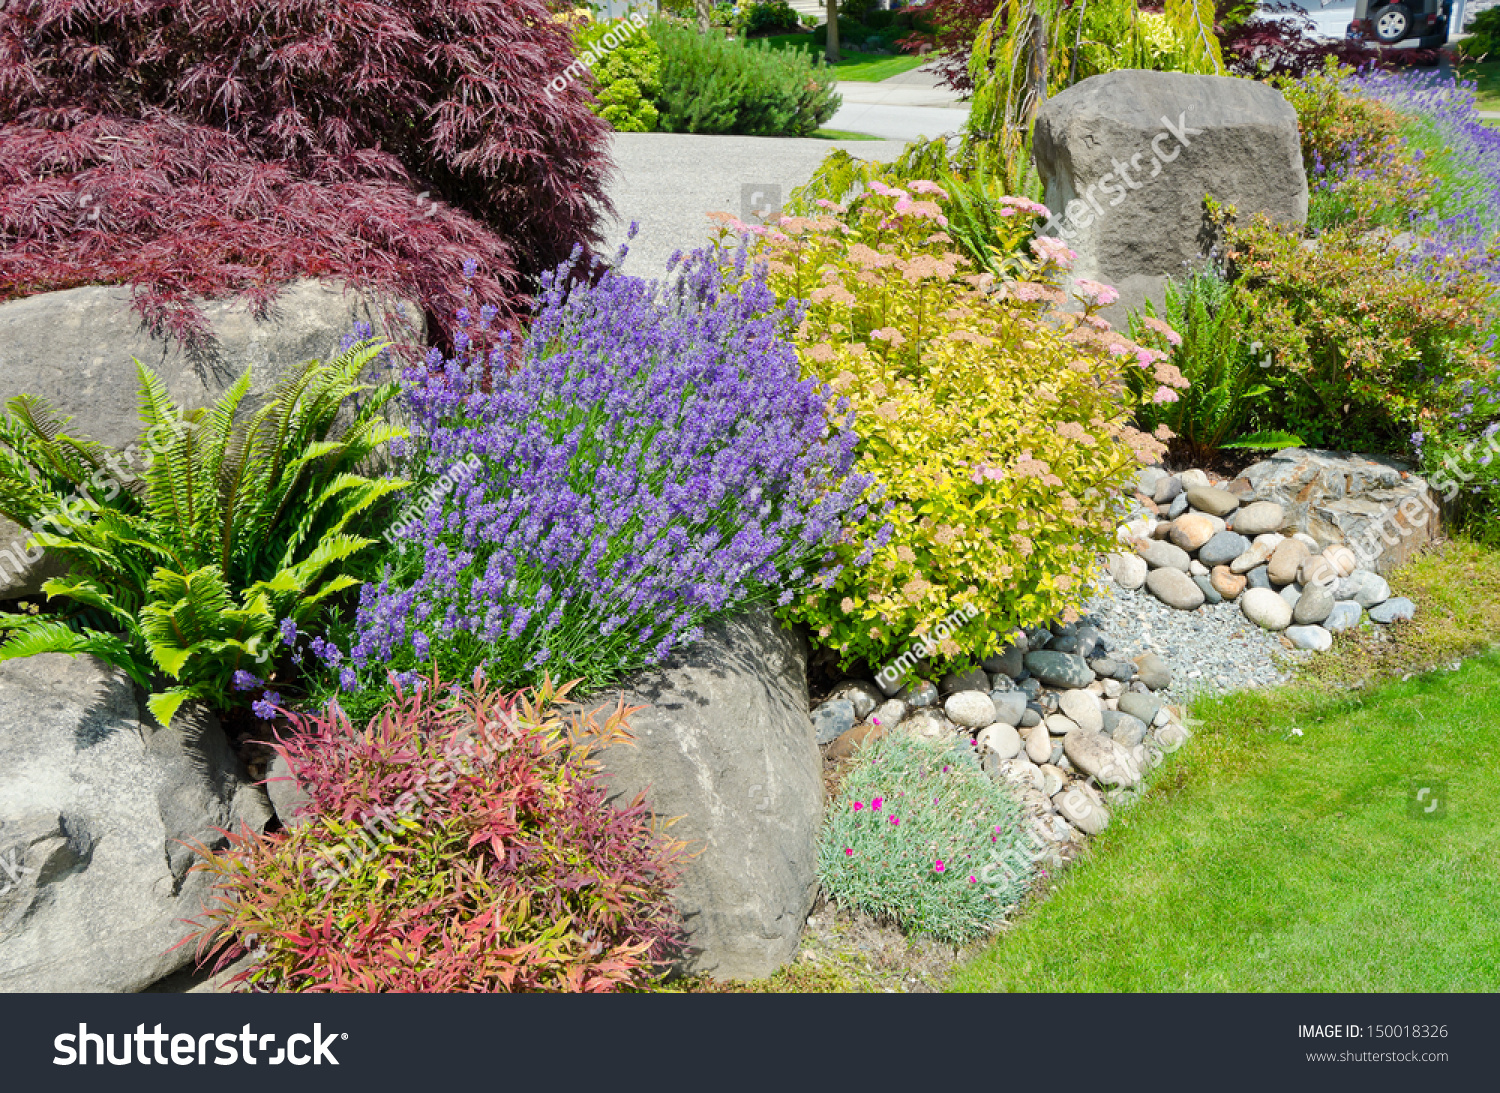 Decorative Stones For Flower Beds Nicely Decorated Colorful Flowerbed Stones Bushes Stock Photo